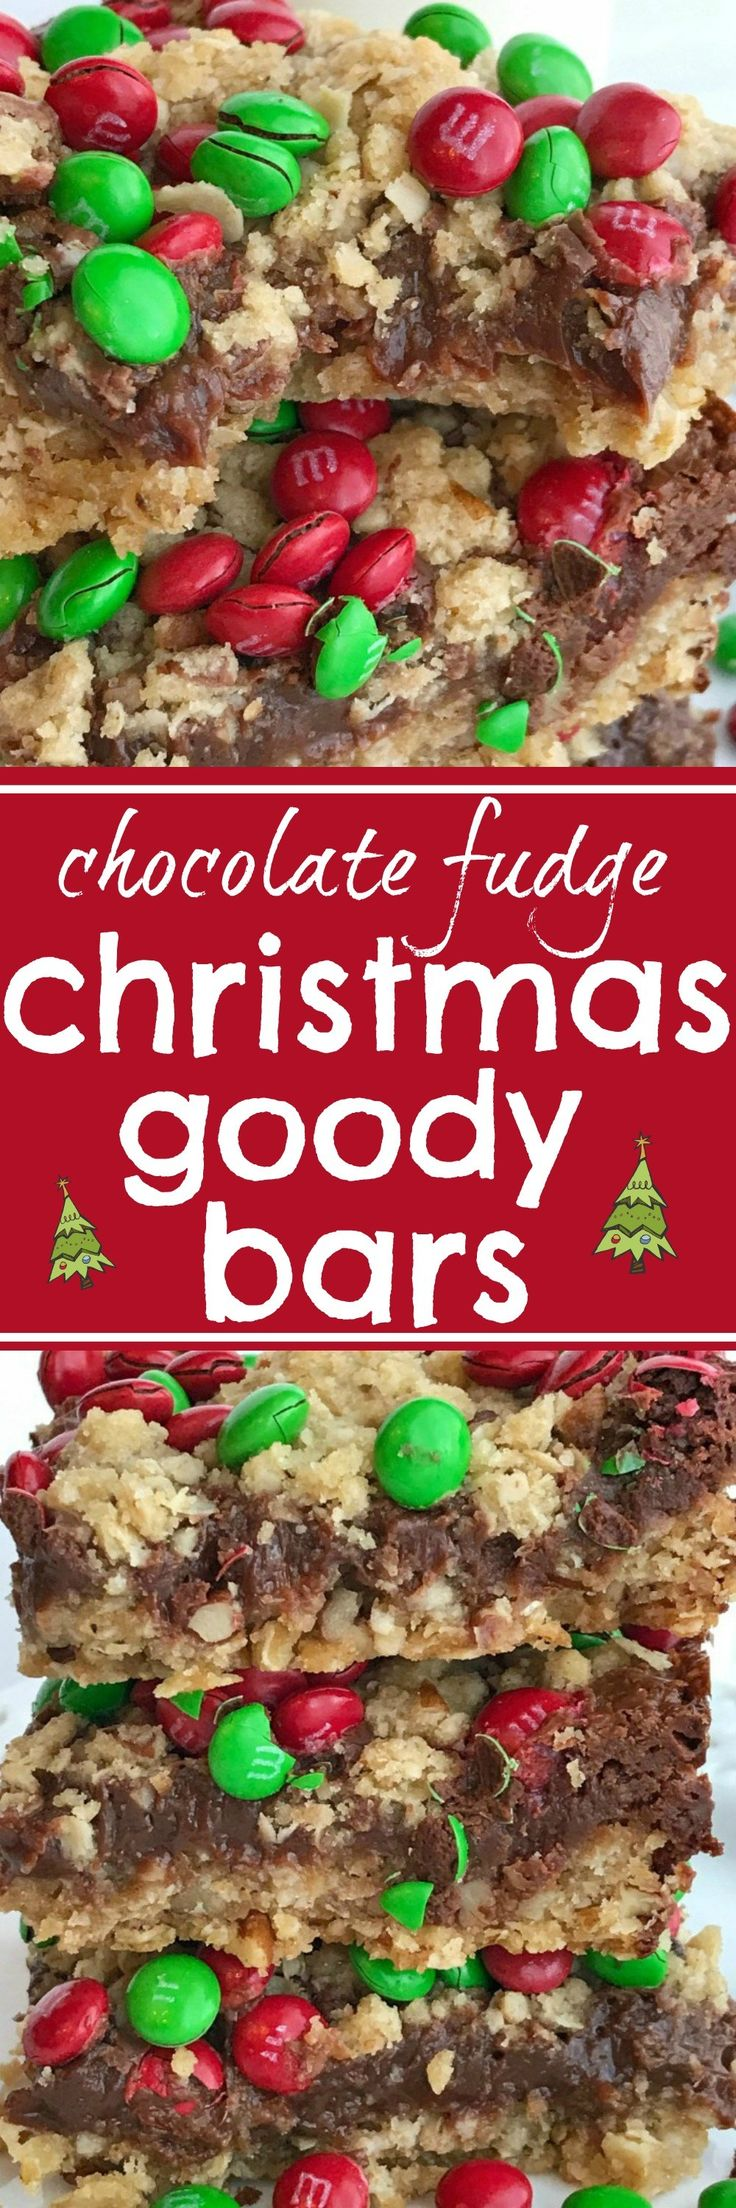 Chocolate Fudge Christmas Goody Bars | Chocolate | Fudge | Christmas Cookies | Dessert | Dessert Recipes | Christmas Food | Christmas Desserts | Pecans | www.togetherasfamily.com #christmastreats #christmasdesserts #chocolate #fudge